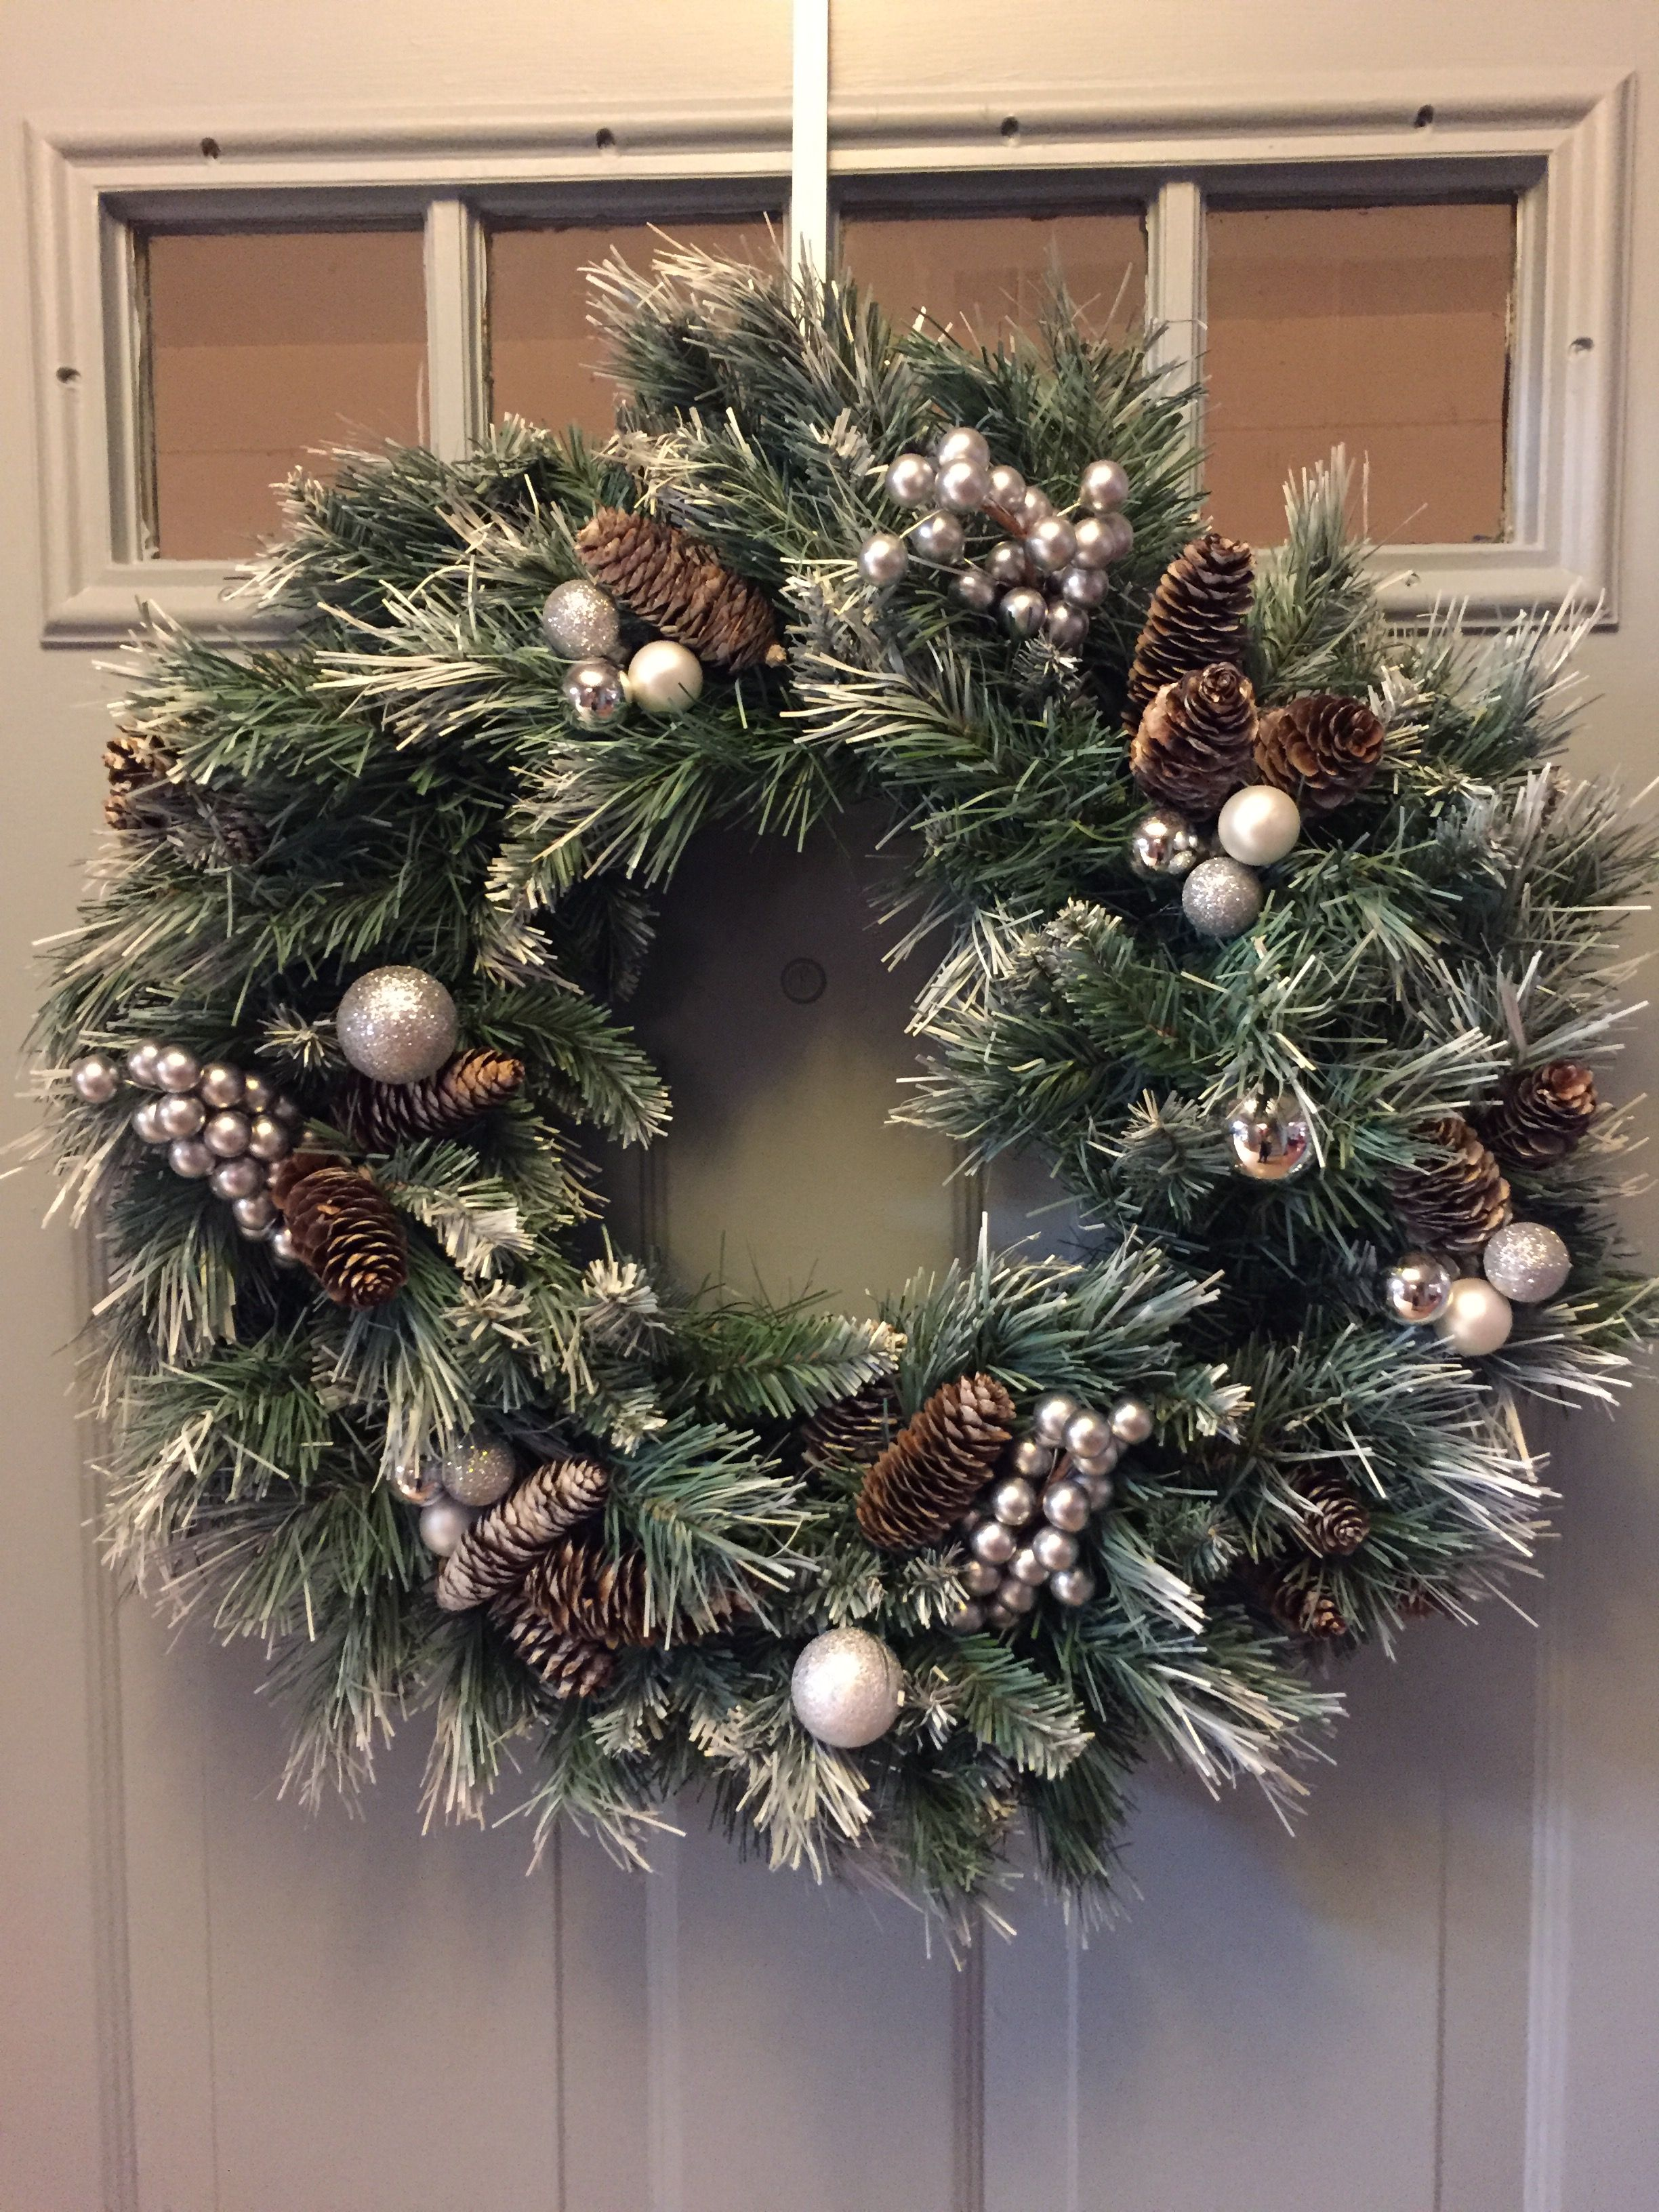 Blue silver and white Christmas wreath #rustikaleweihnachten